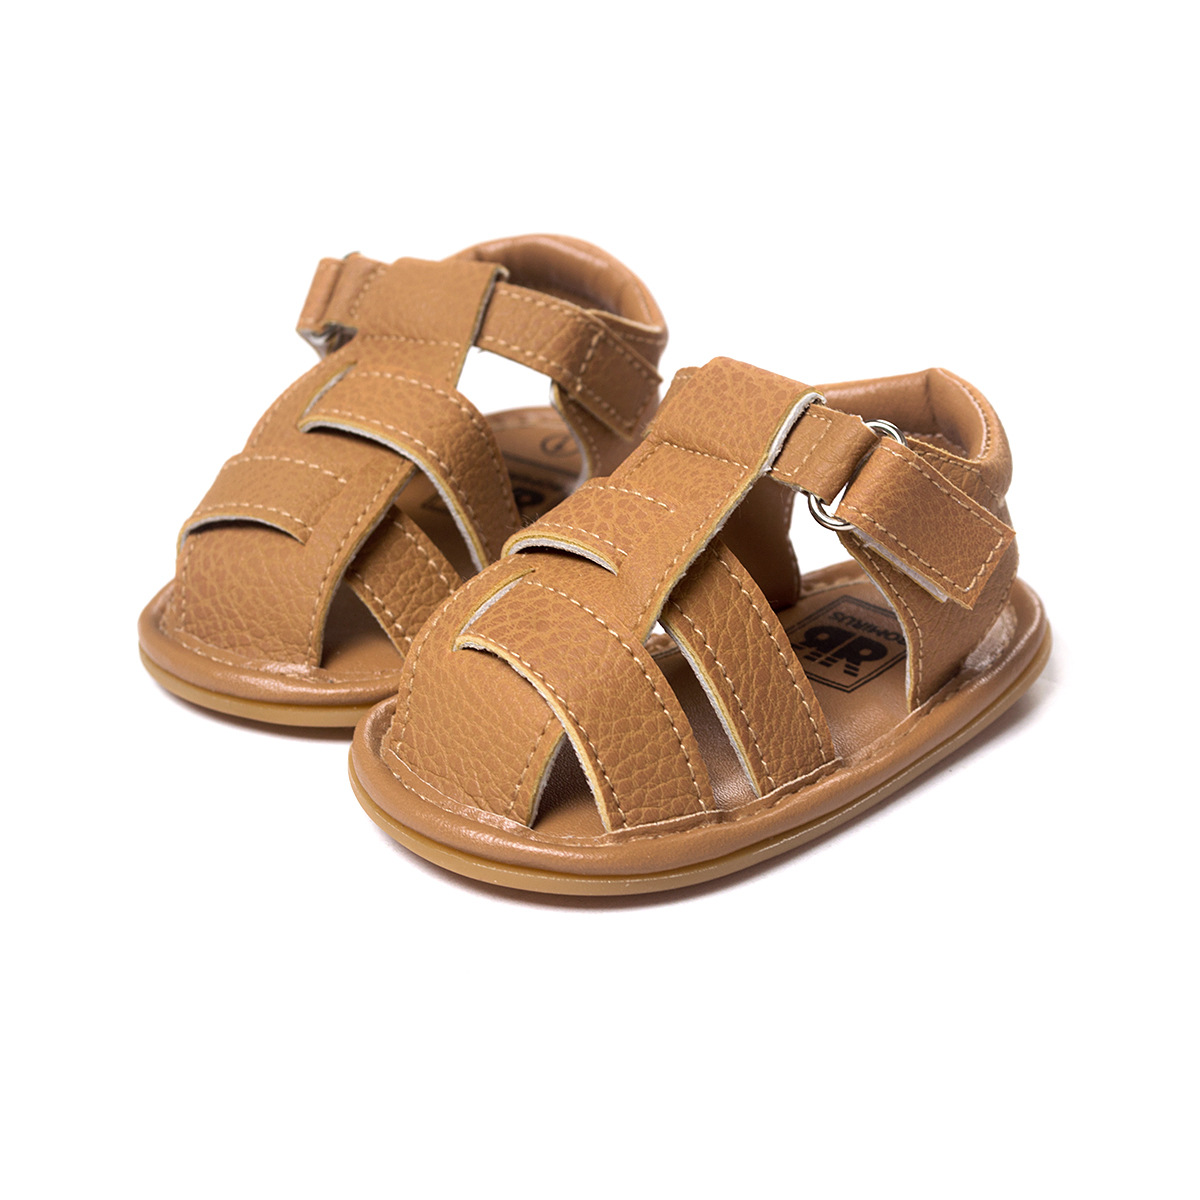 Fashion comfortable rubber sole baby boys sandals baby sunmmer shoes(China (Mainland))